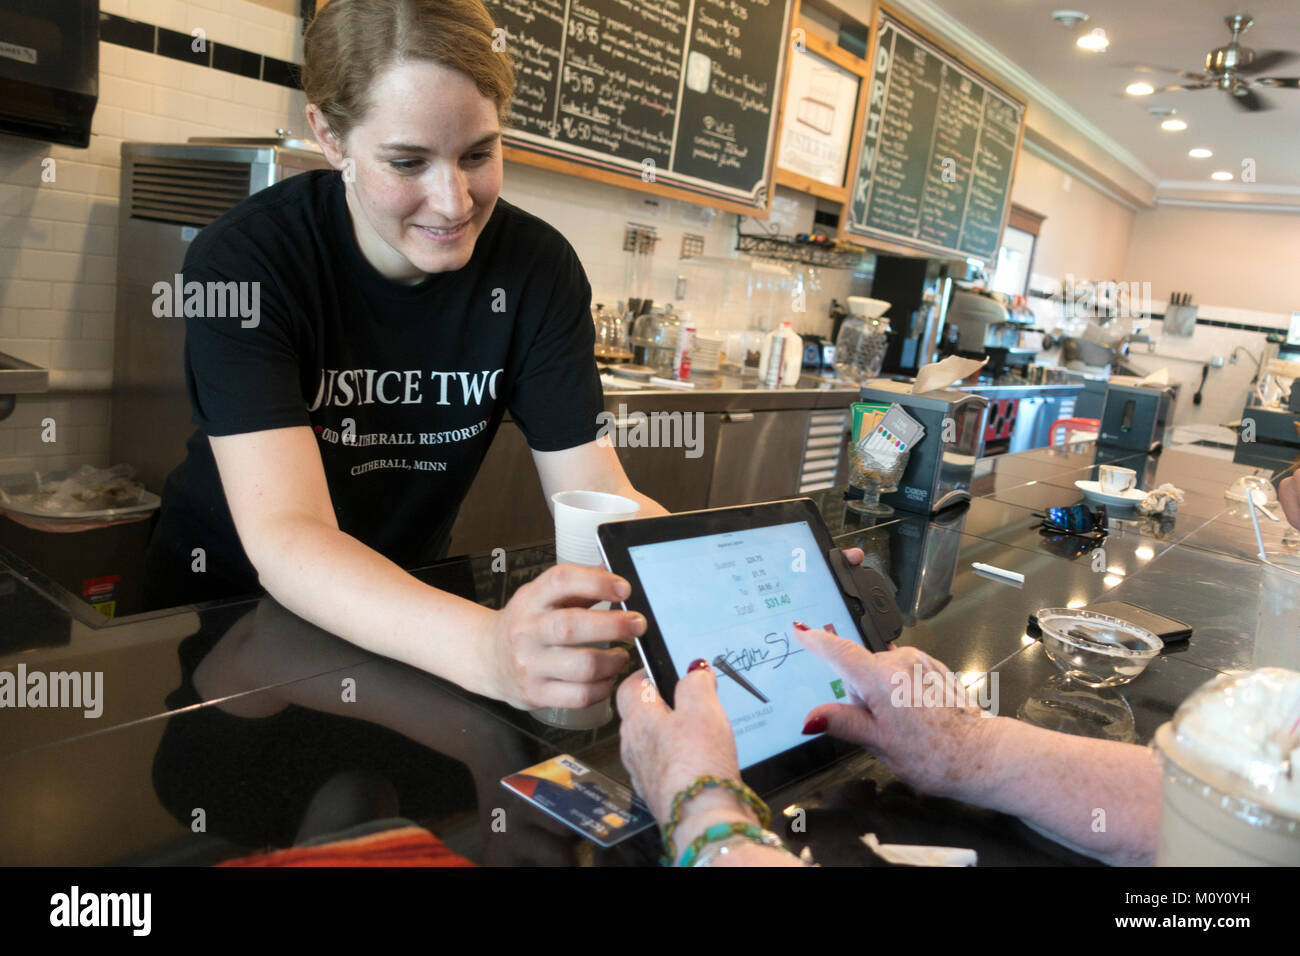 Waitress at the restored 'Justice Two Coffeehouse and Eatery' malt shop helping customer pay her bill electronically. - Stock Image